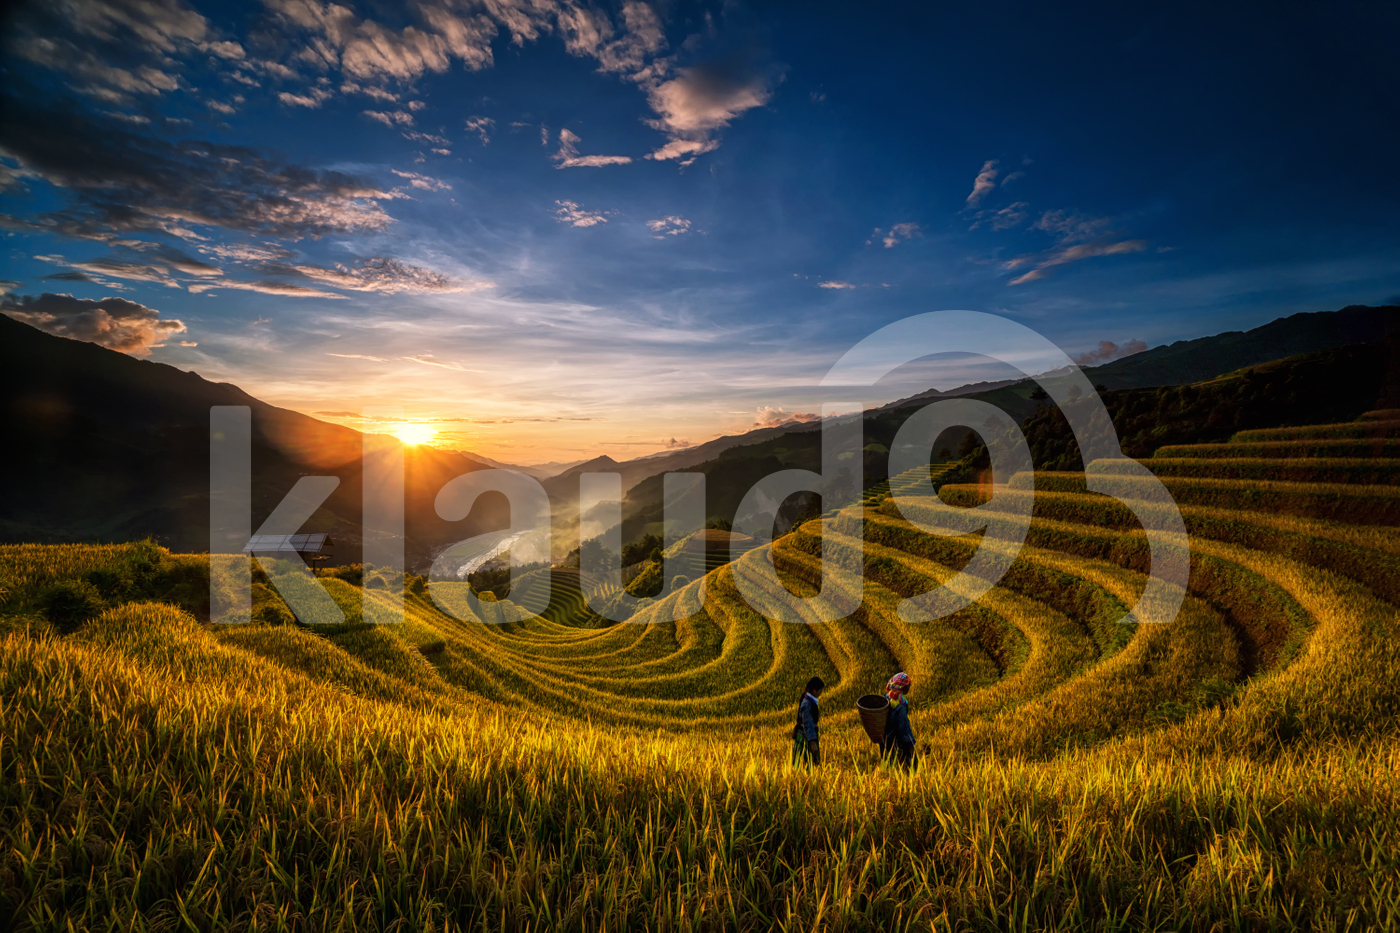 Two undefined Vietnamese Hmong are walking in the fantastic landscape of rice field terrace.